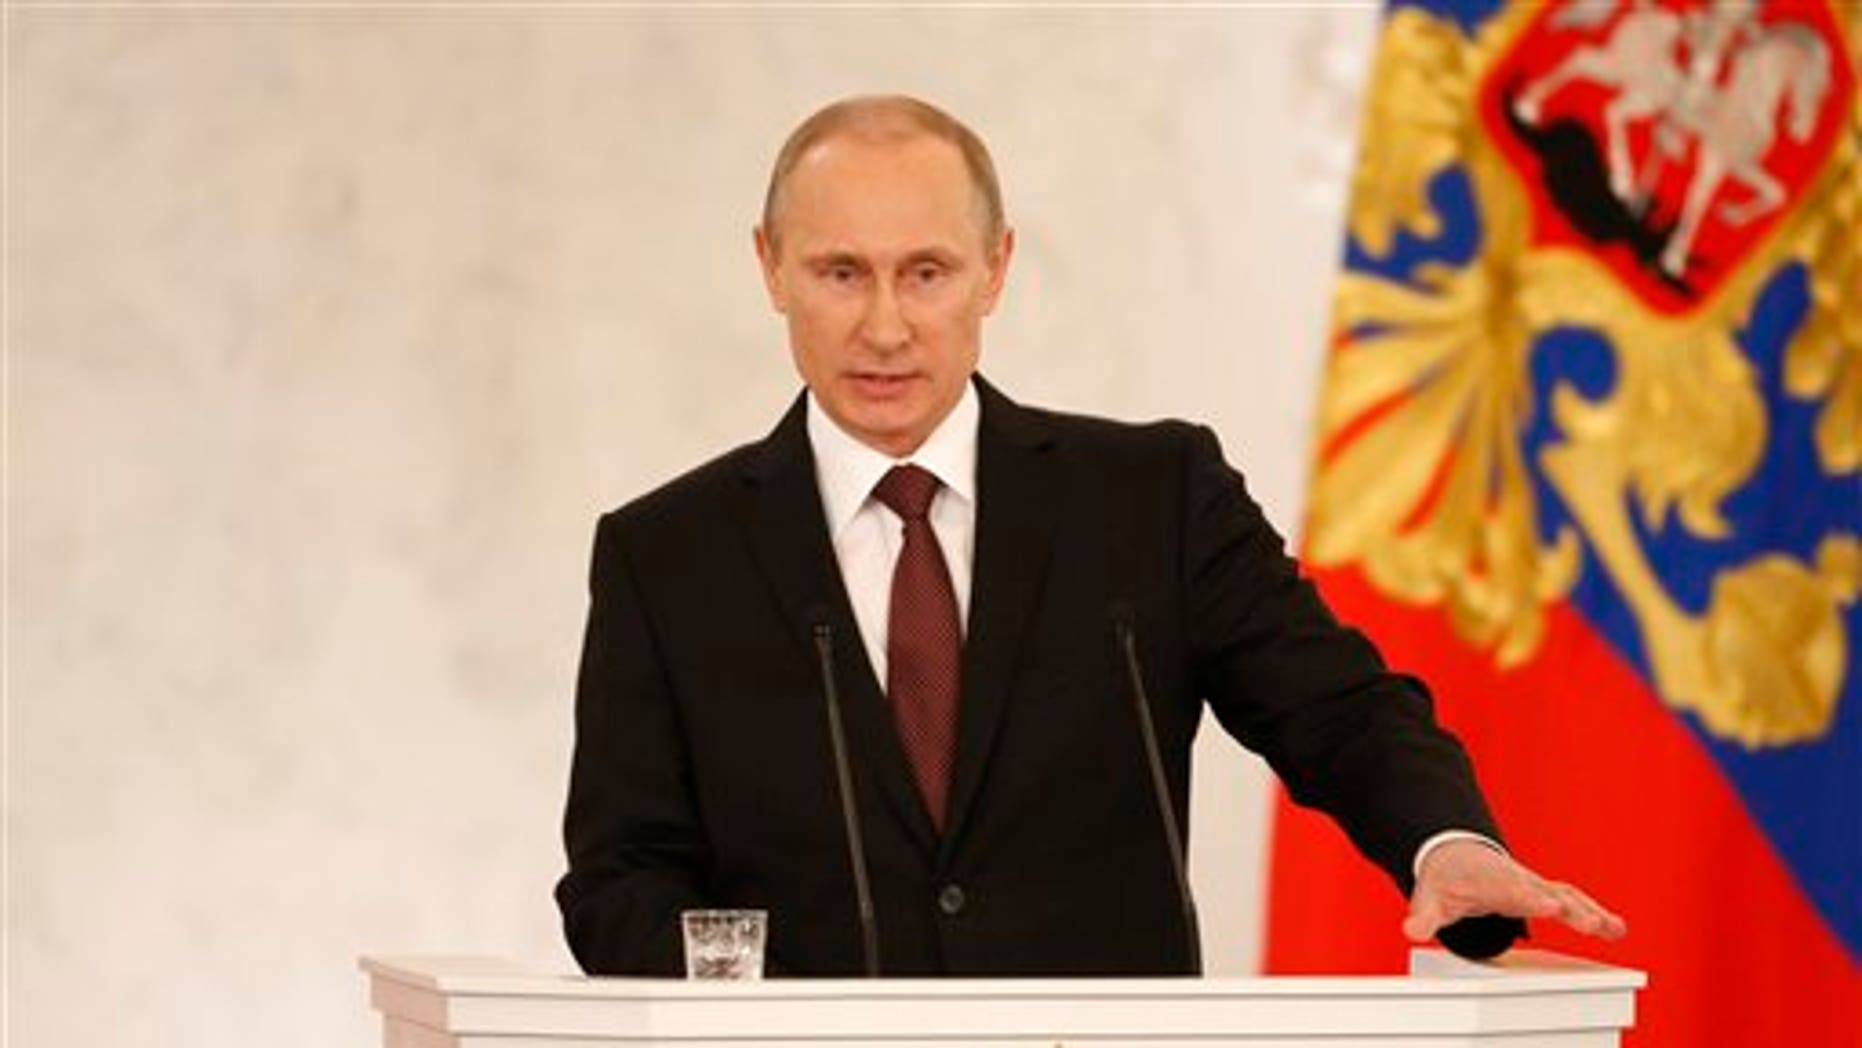 Russia's President Vladimir Putin addresses the Federation Council in Moscow's Kremlin on Tuesday, March 18, 2014.